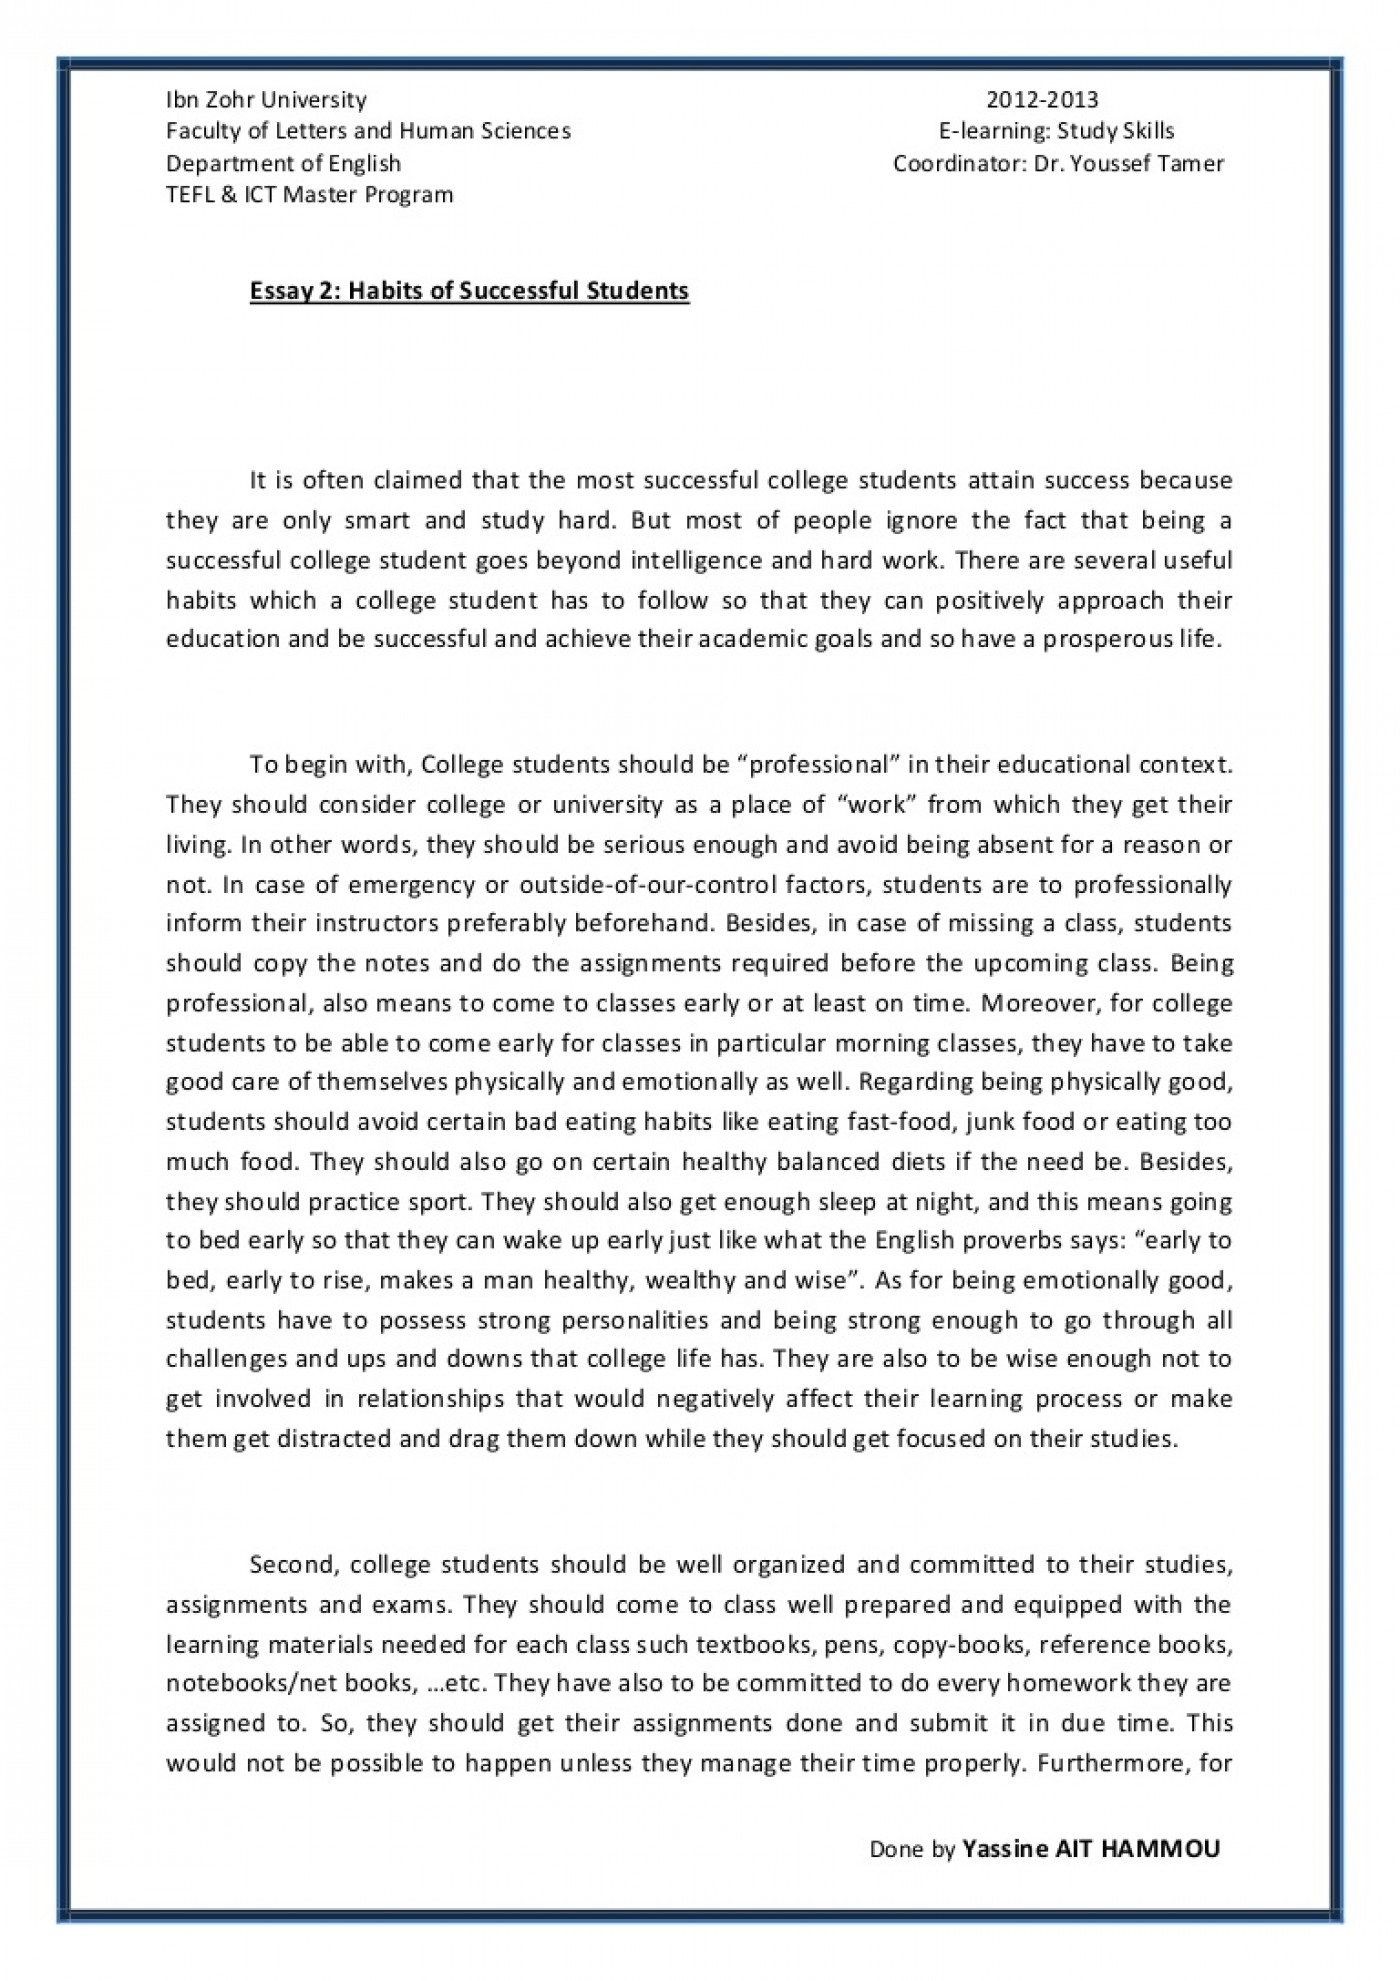 005 Essay About Good Student Essay2 Succesfulcollegestudentshabitsbyyassineaithammou Phpapp01 Thumbnail Rare Qualities Of Students On Ideal In Punjabi Definition 1400